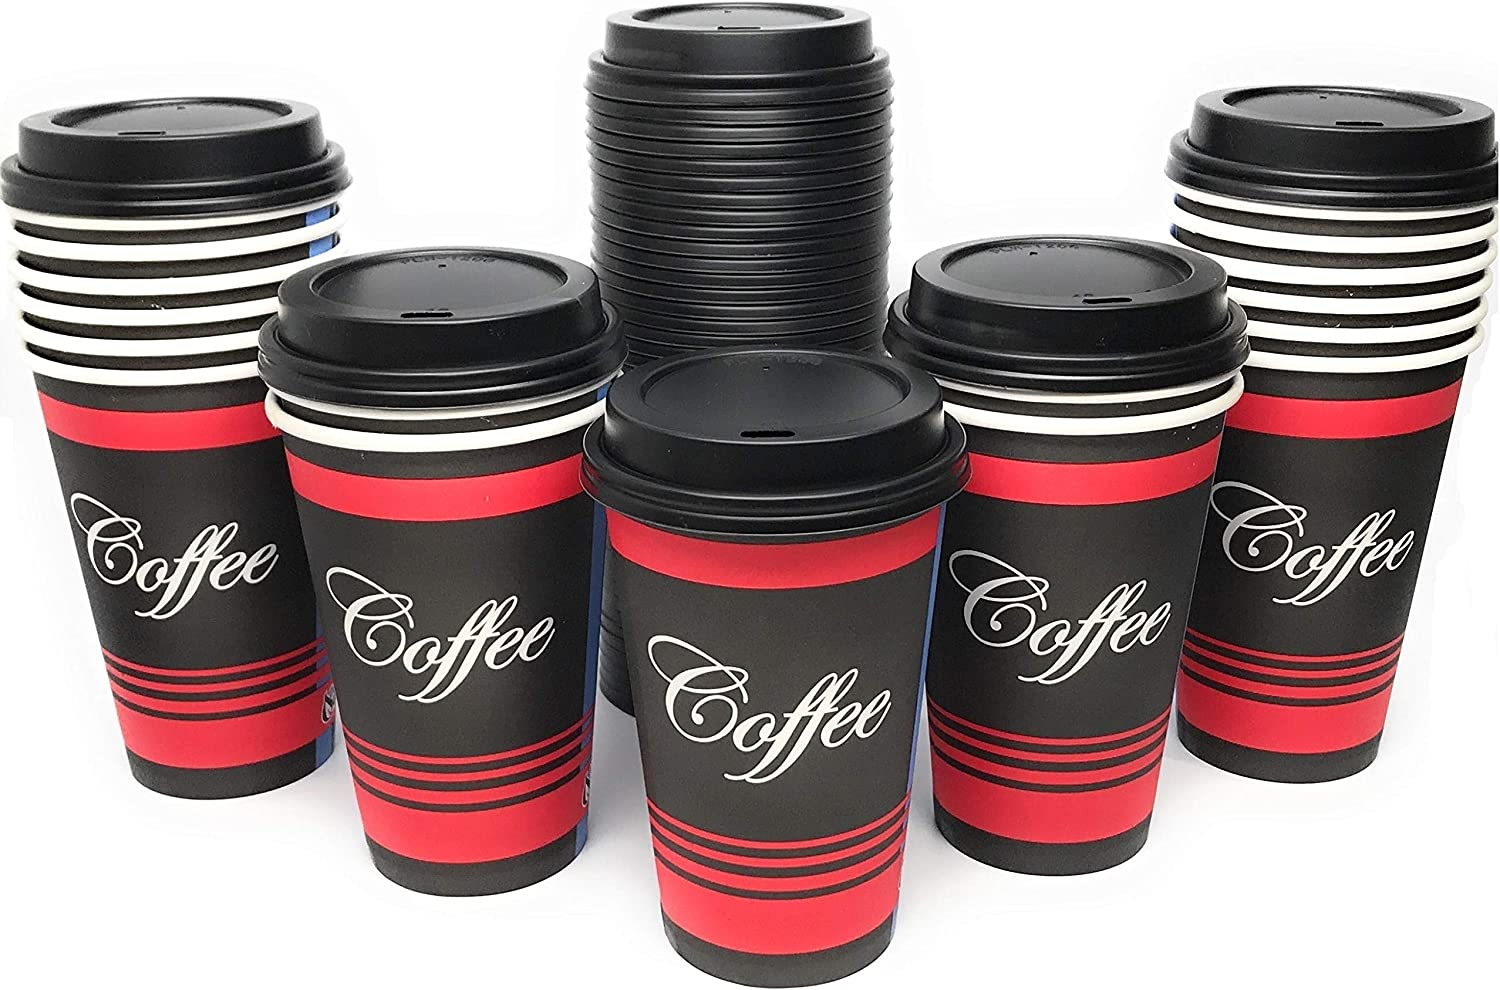 Large 16 oz 100 Count by EcoQuality - Classic Durable Disposable Paper Cups & Black Dome Lids For Hot/Cold Drink, Coffee, Tea, Cocoa, Travel - Large 16 Ounce Cups, 100 Count Cups & 100 Black Lids